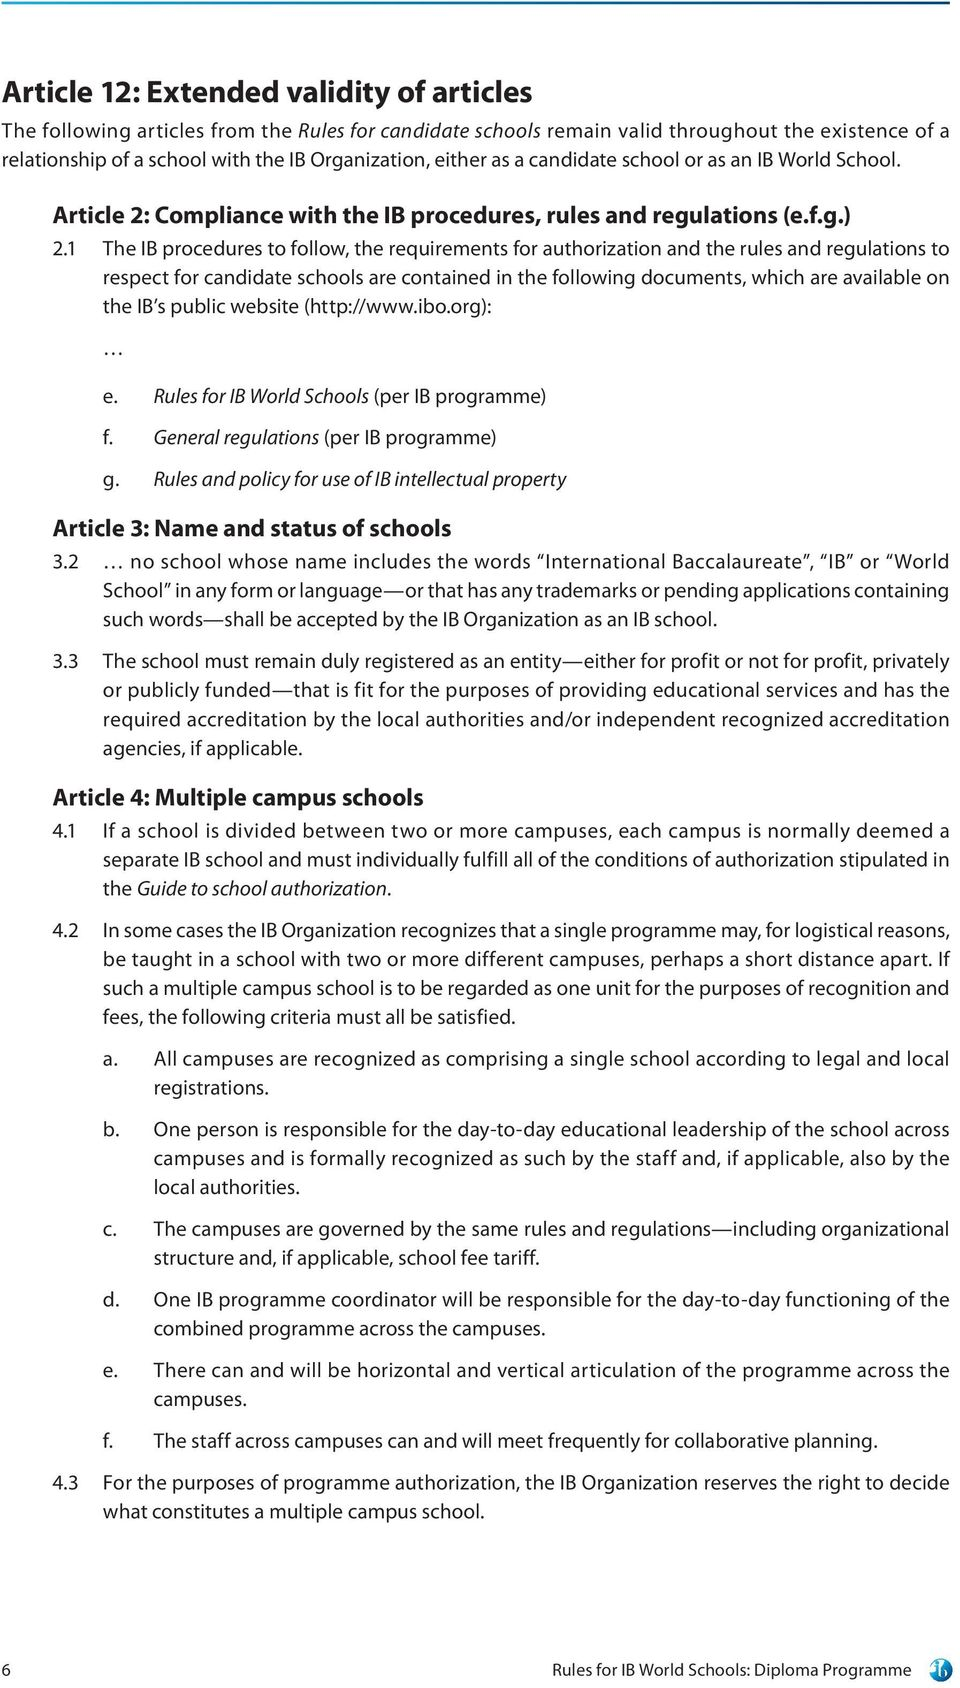 1 The IB procedures to follow, the requirements for authorization and the rules and regulations to respect for candidate schools are contained in the following documents, which are available on the